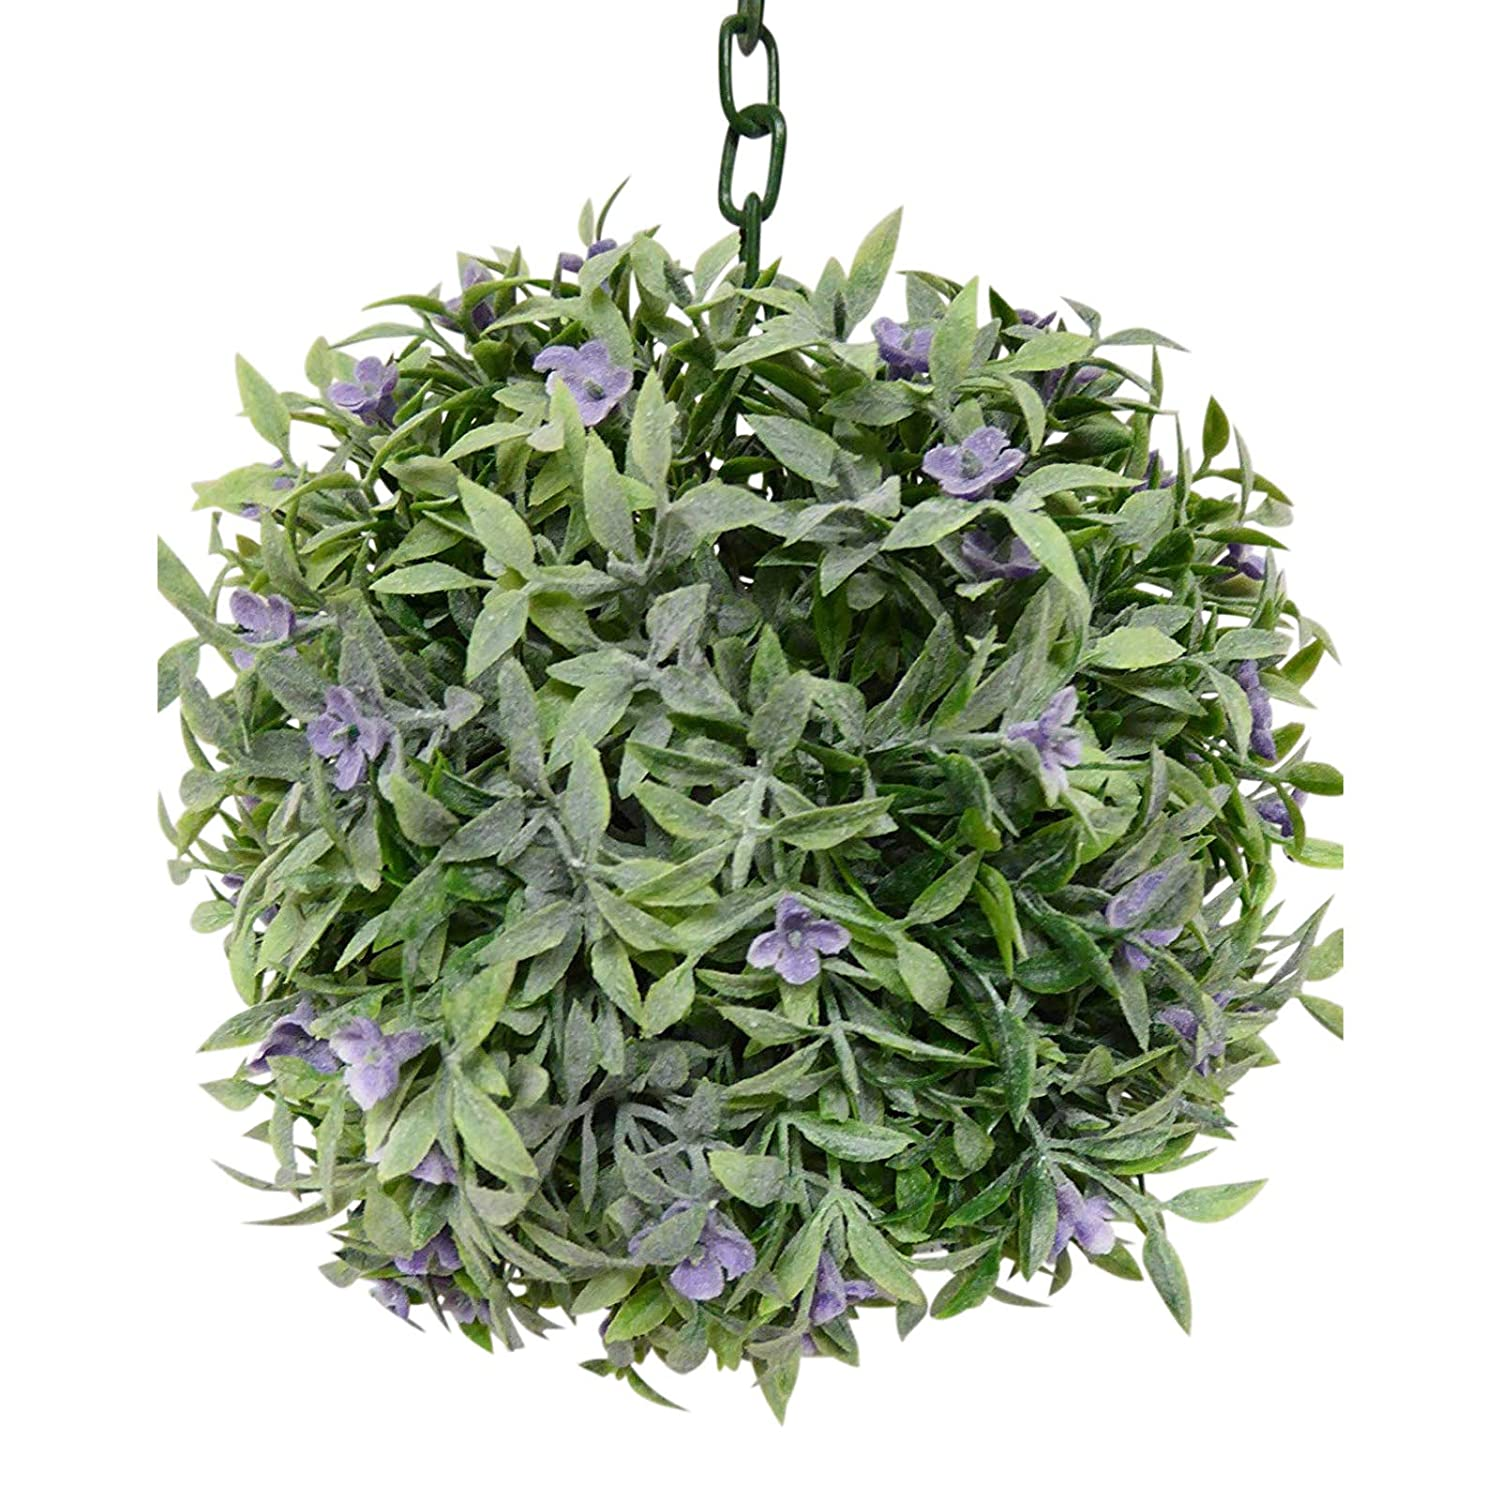 Artificial Topiary Balls - Large 20cm Green with Purple Flowers Hanging Artificial Buxus Boxwood Topiary Ball UK-Gardens